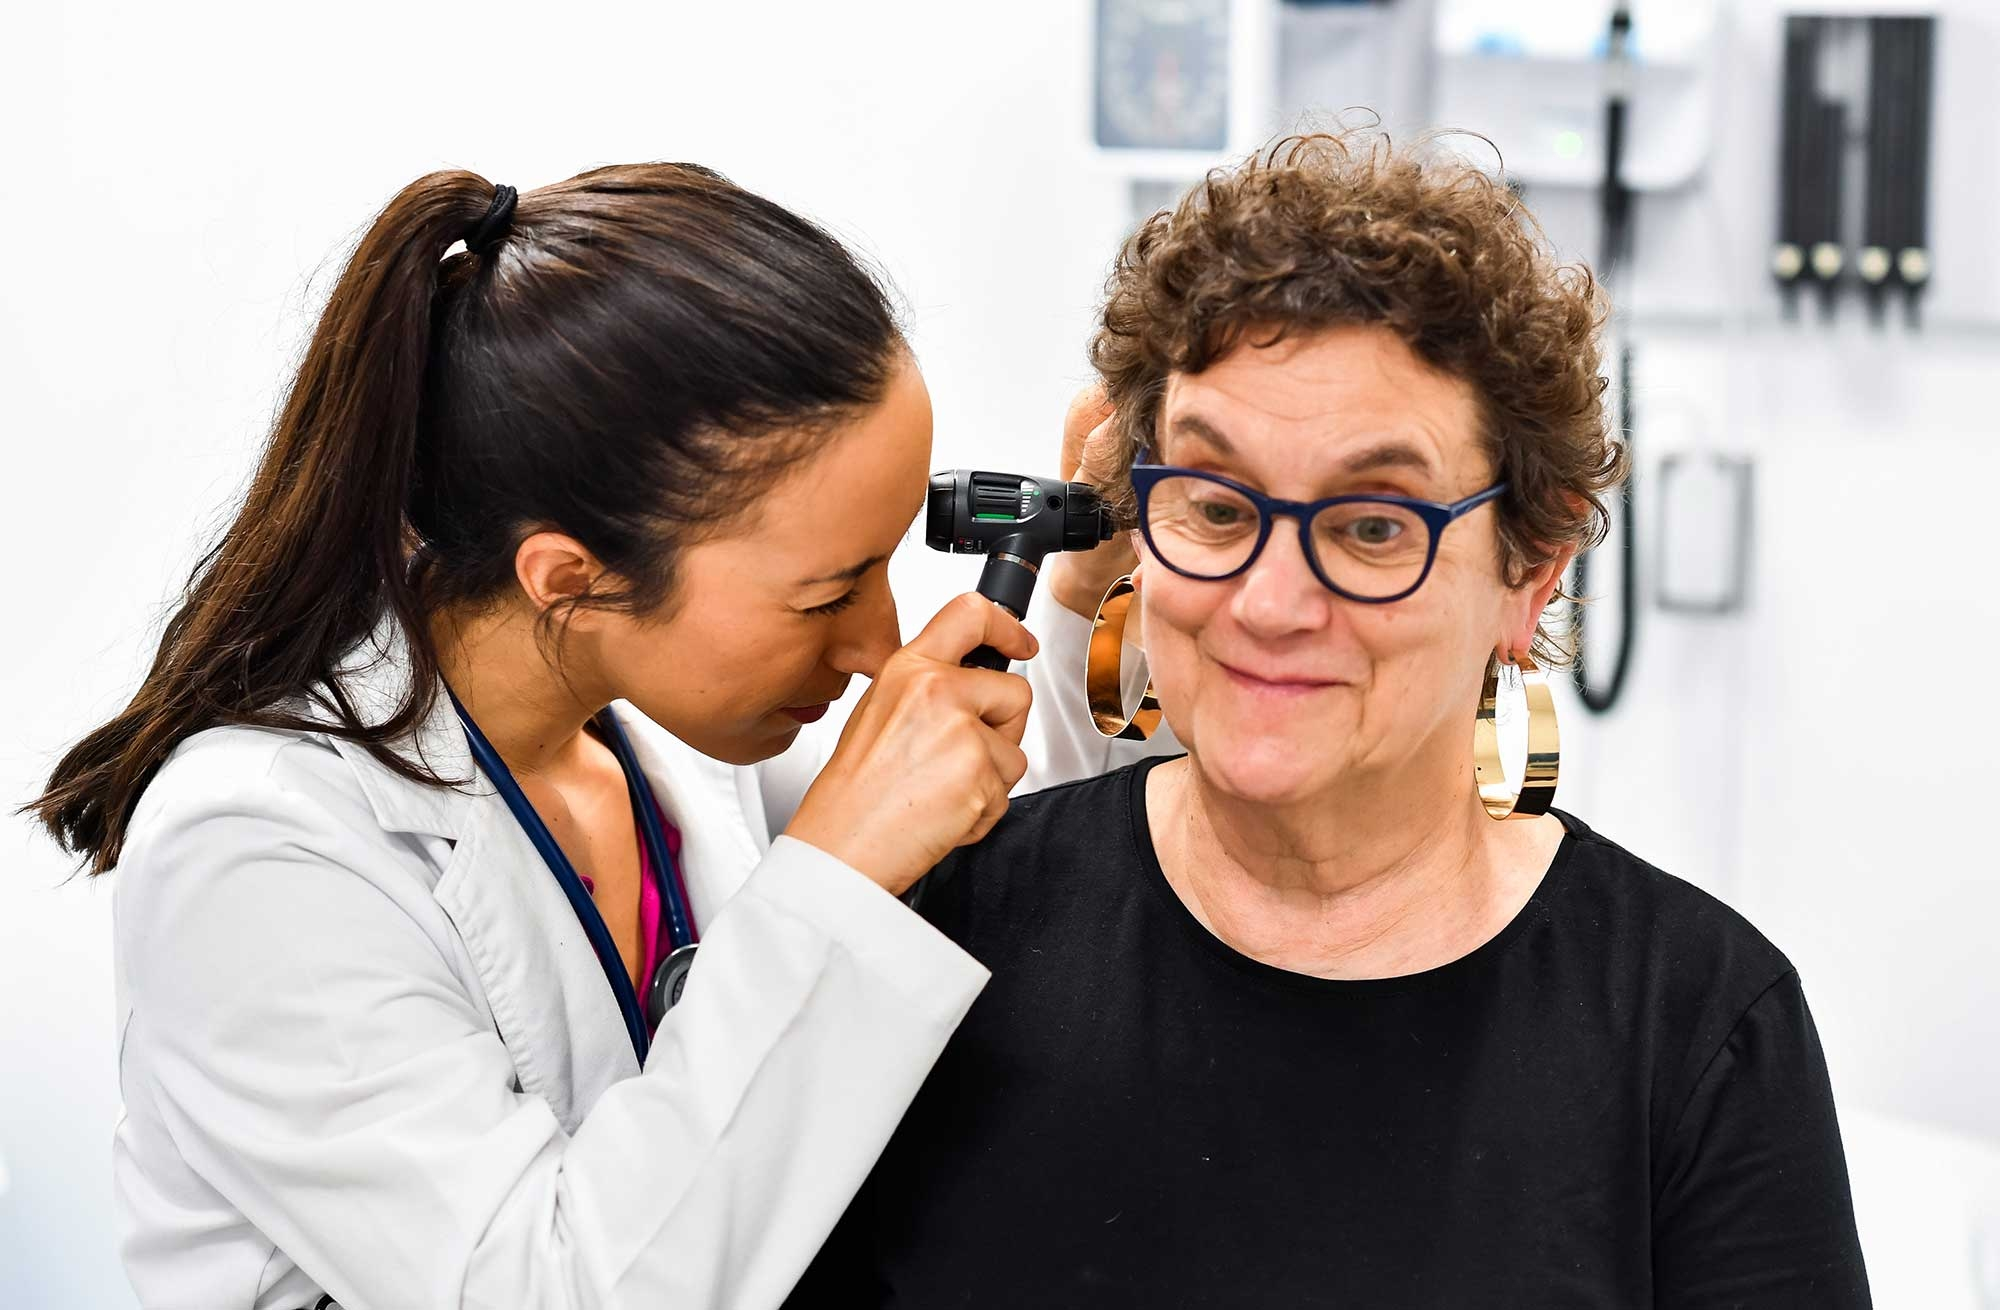 Image of NP student clinician examining a client at the Ruth Sleeper Nursing Center